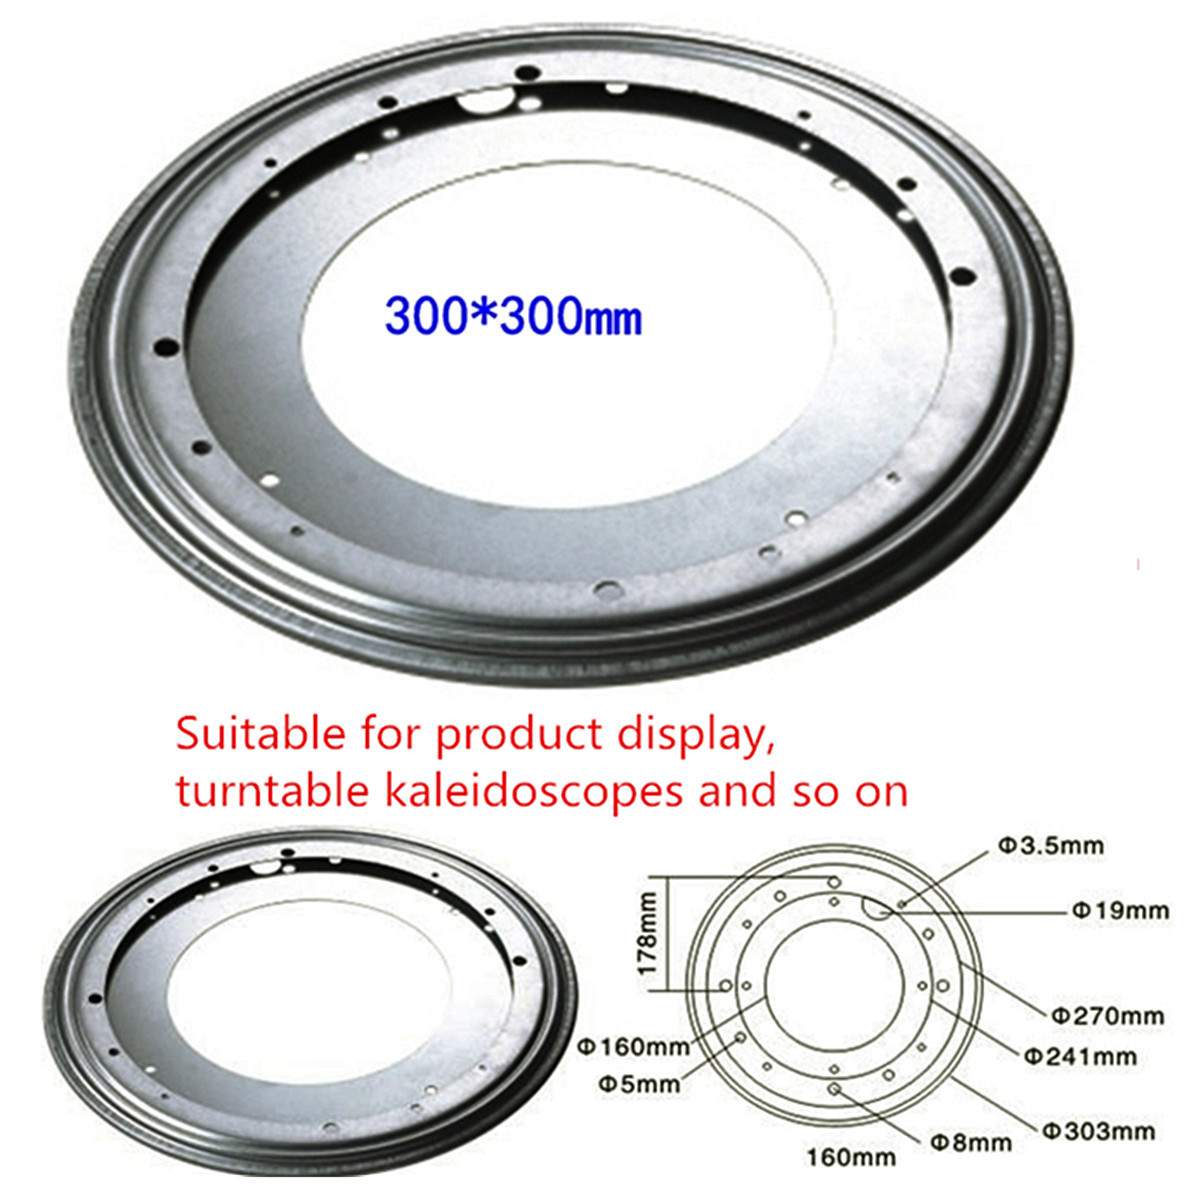 Heavy   Metal 3 SIze Bearing Rotating Swivel-Turntable Plate For TV Rack Desk Table Smoothly Square/Round for Corner CabinetsHeavy   Metal 3 SIze Bearing Rotating Swivel-Turntable Plate For TV Rack Desk Table Smoothly Square/Round for Corner Cabinets